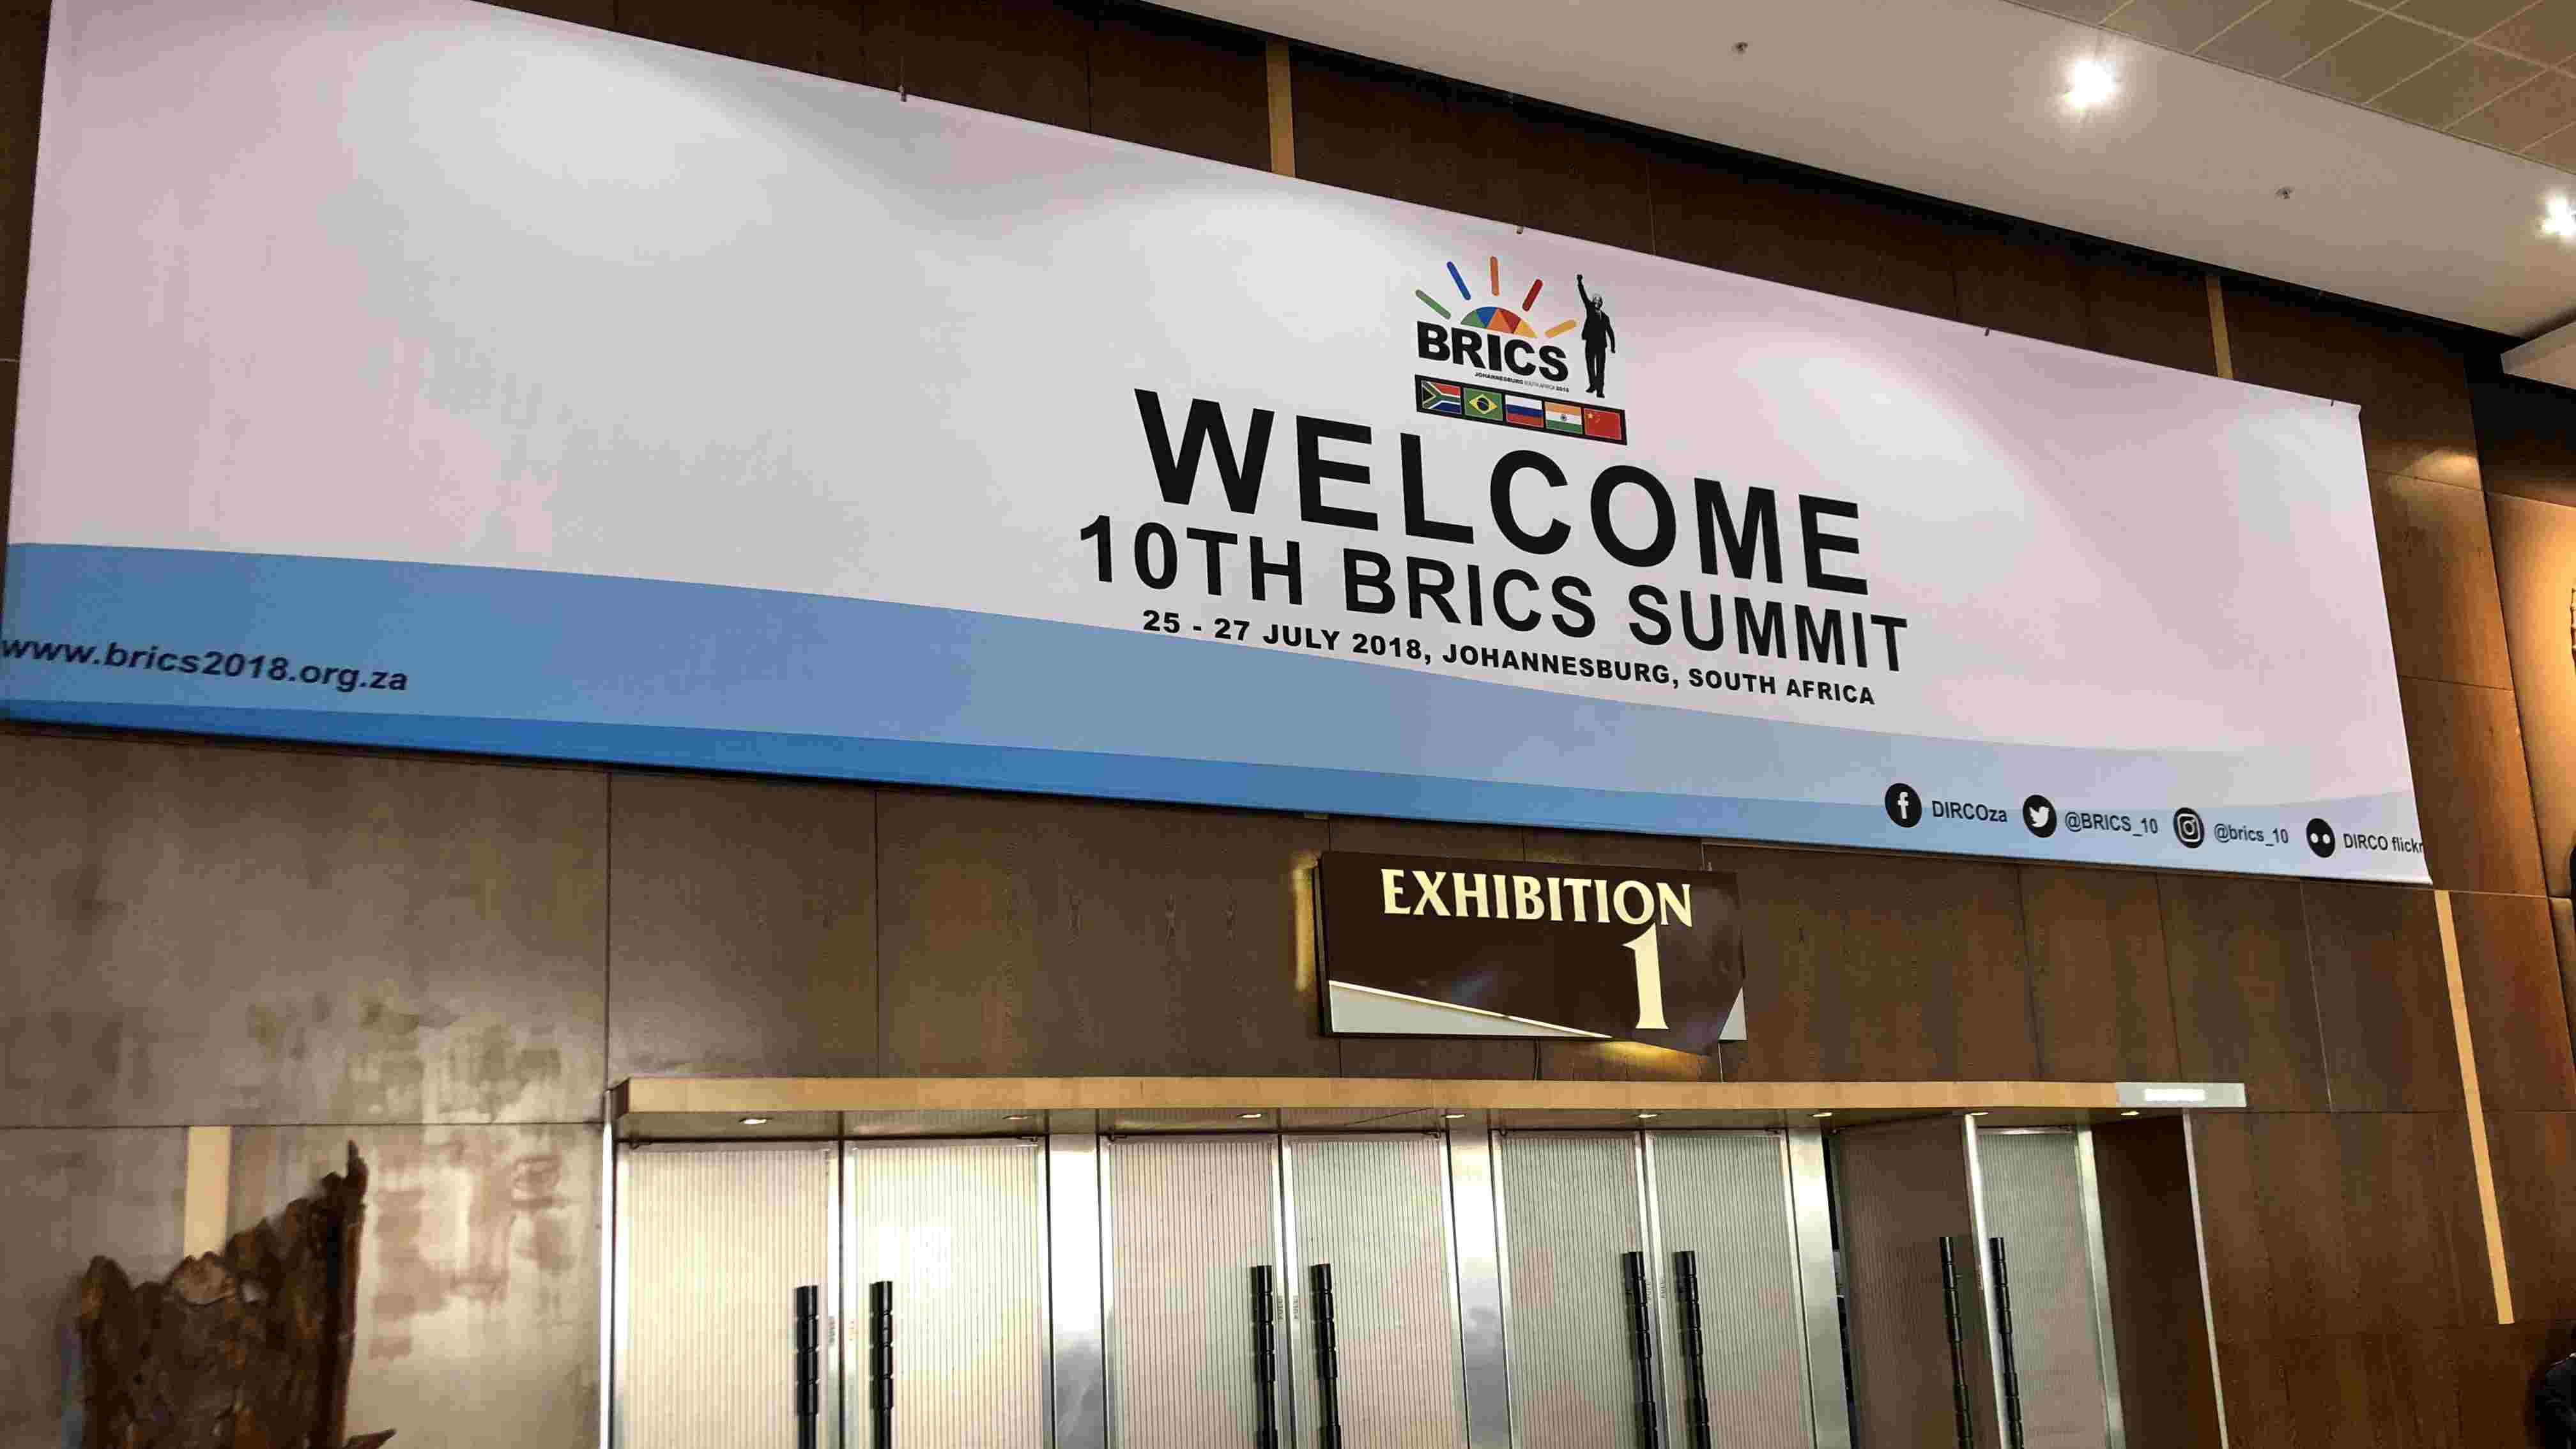 Take a look behind the scene as the 10th BRICS Summit approaches